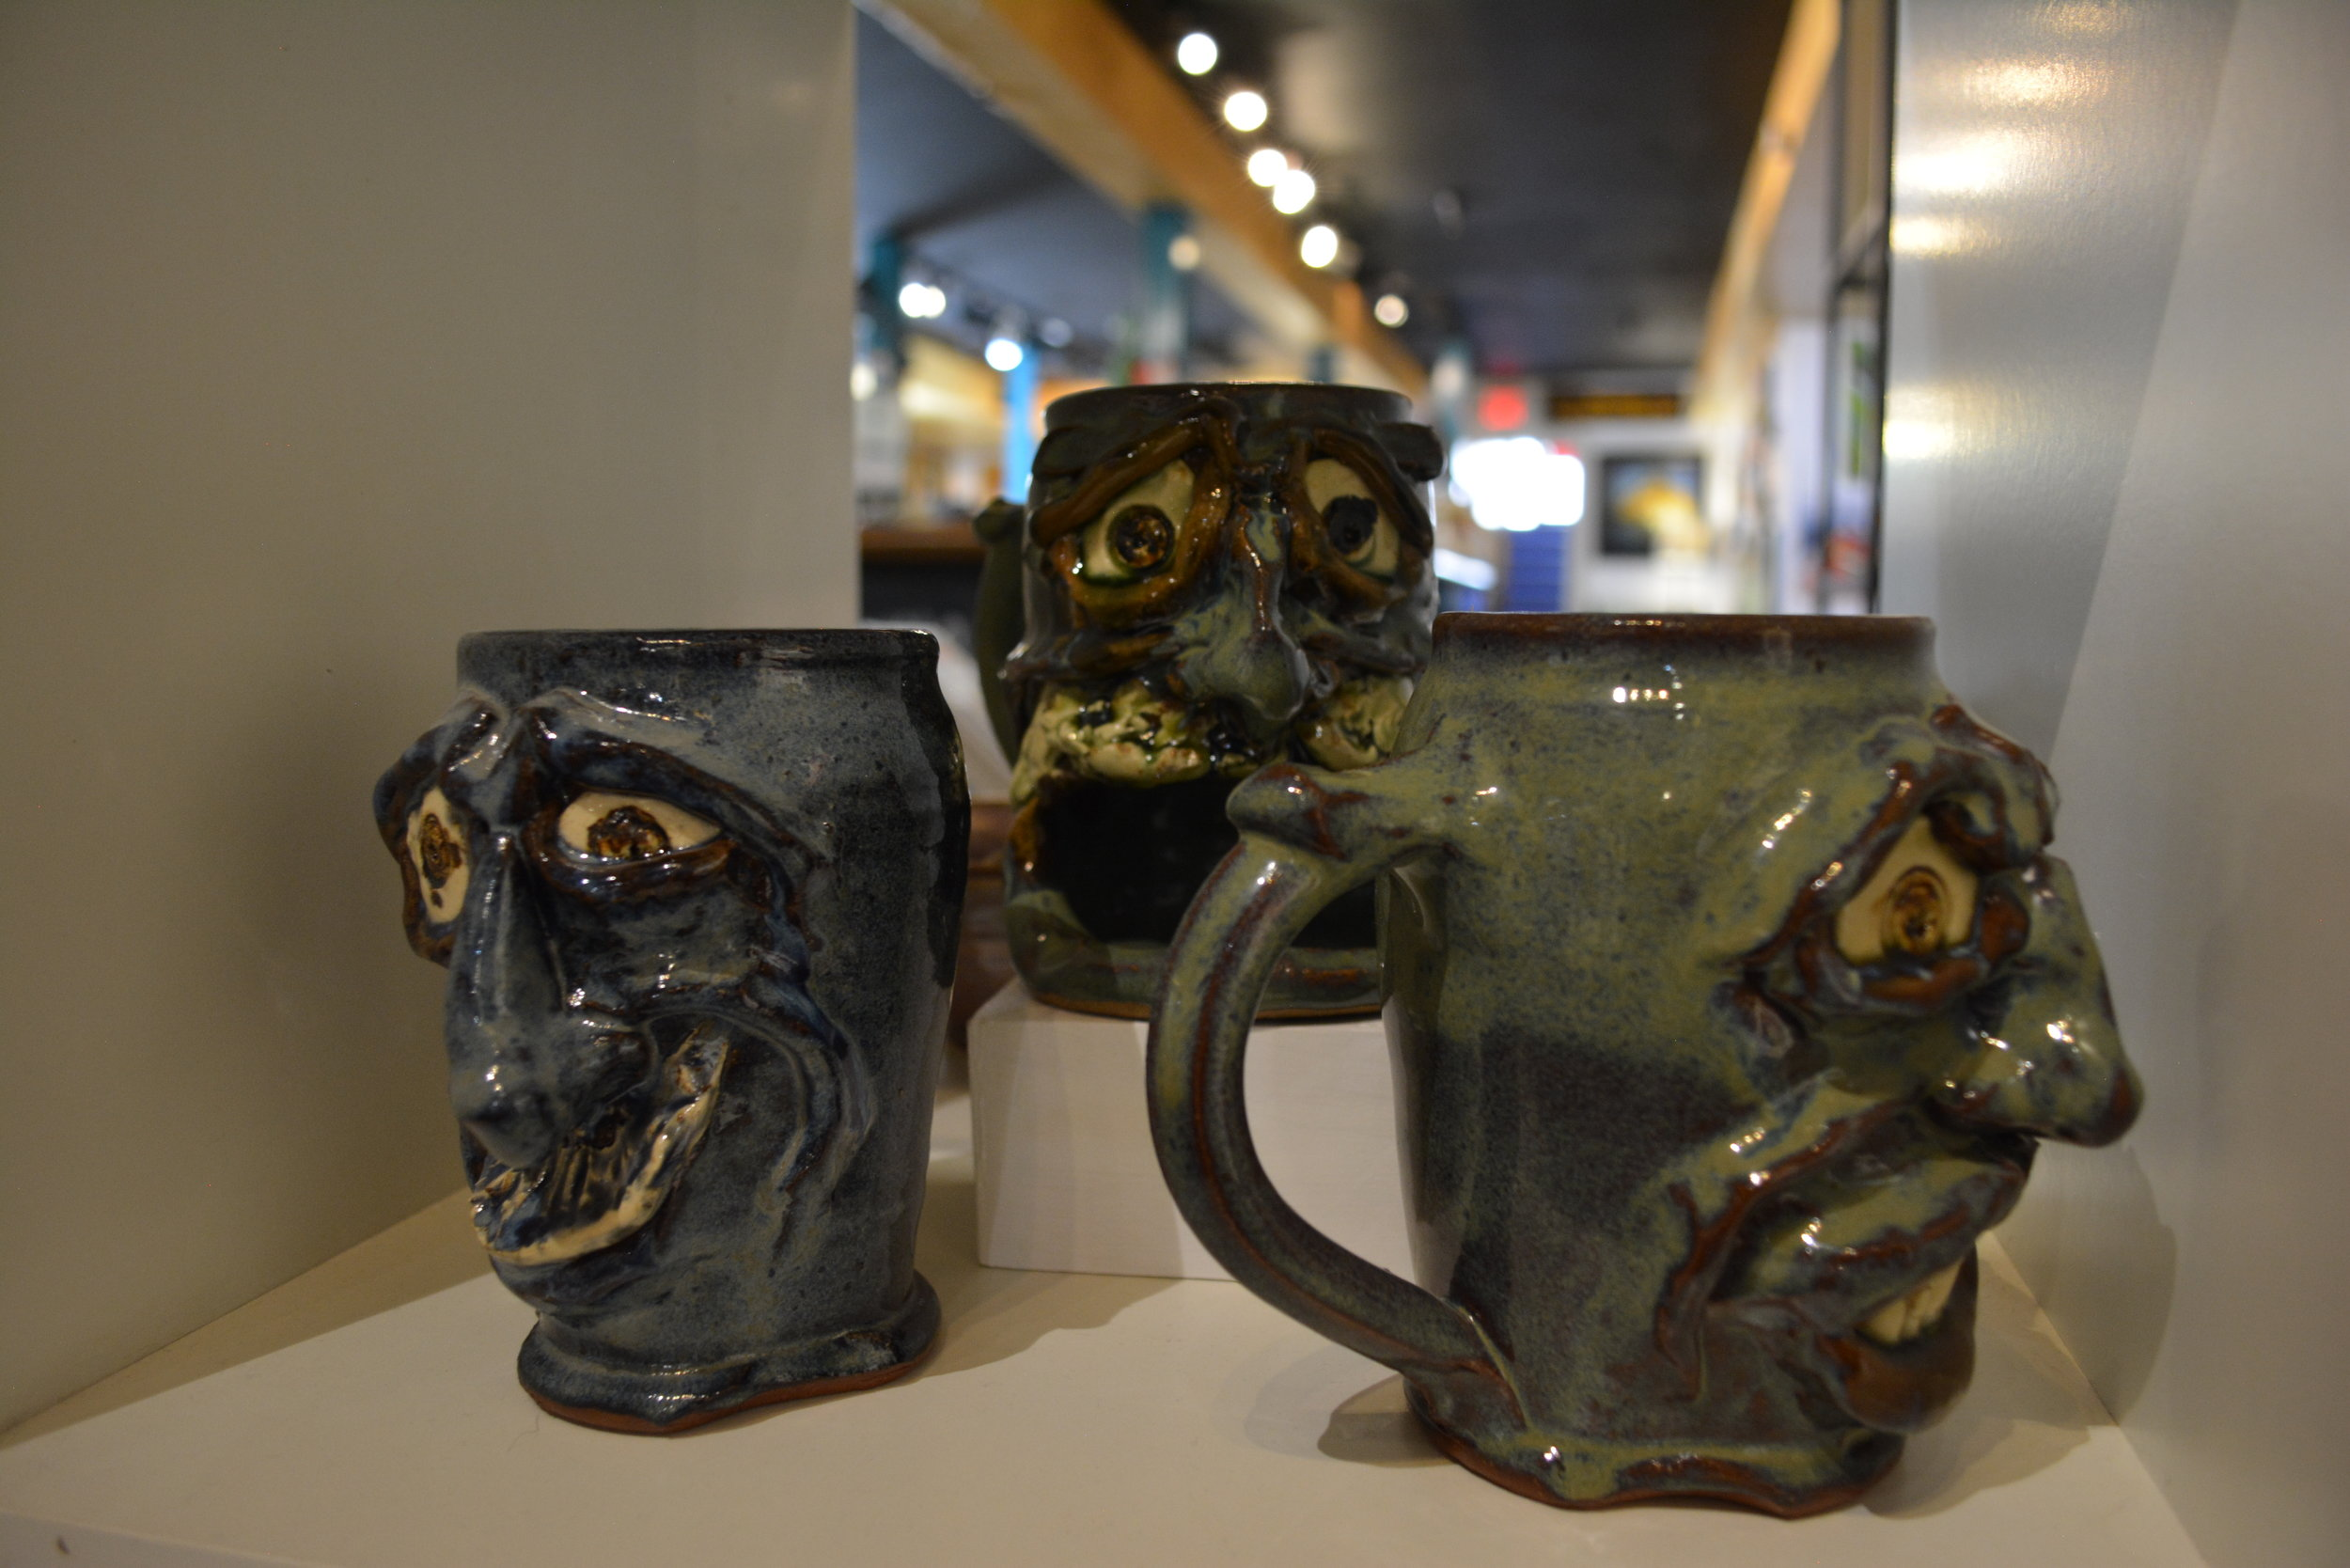 Kate Krauss - Most known for her sculpted face mugs in metal like colors made in ceramic. As well as South Carolina crest mugs, cat bowls and cookie jars.